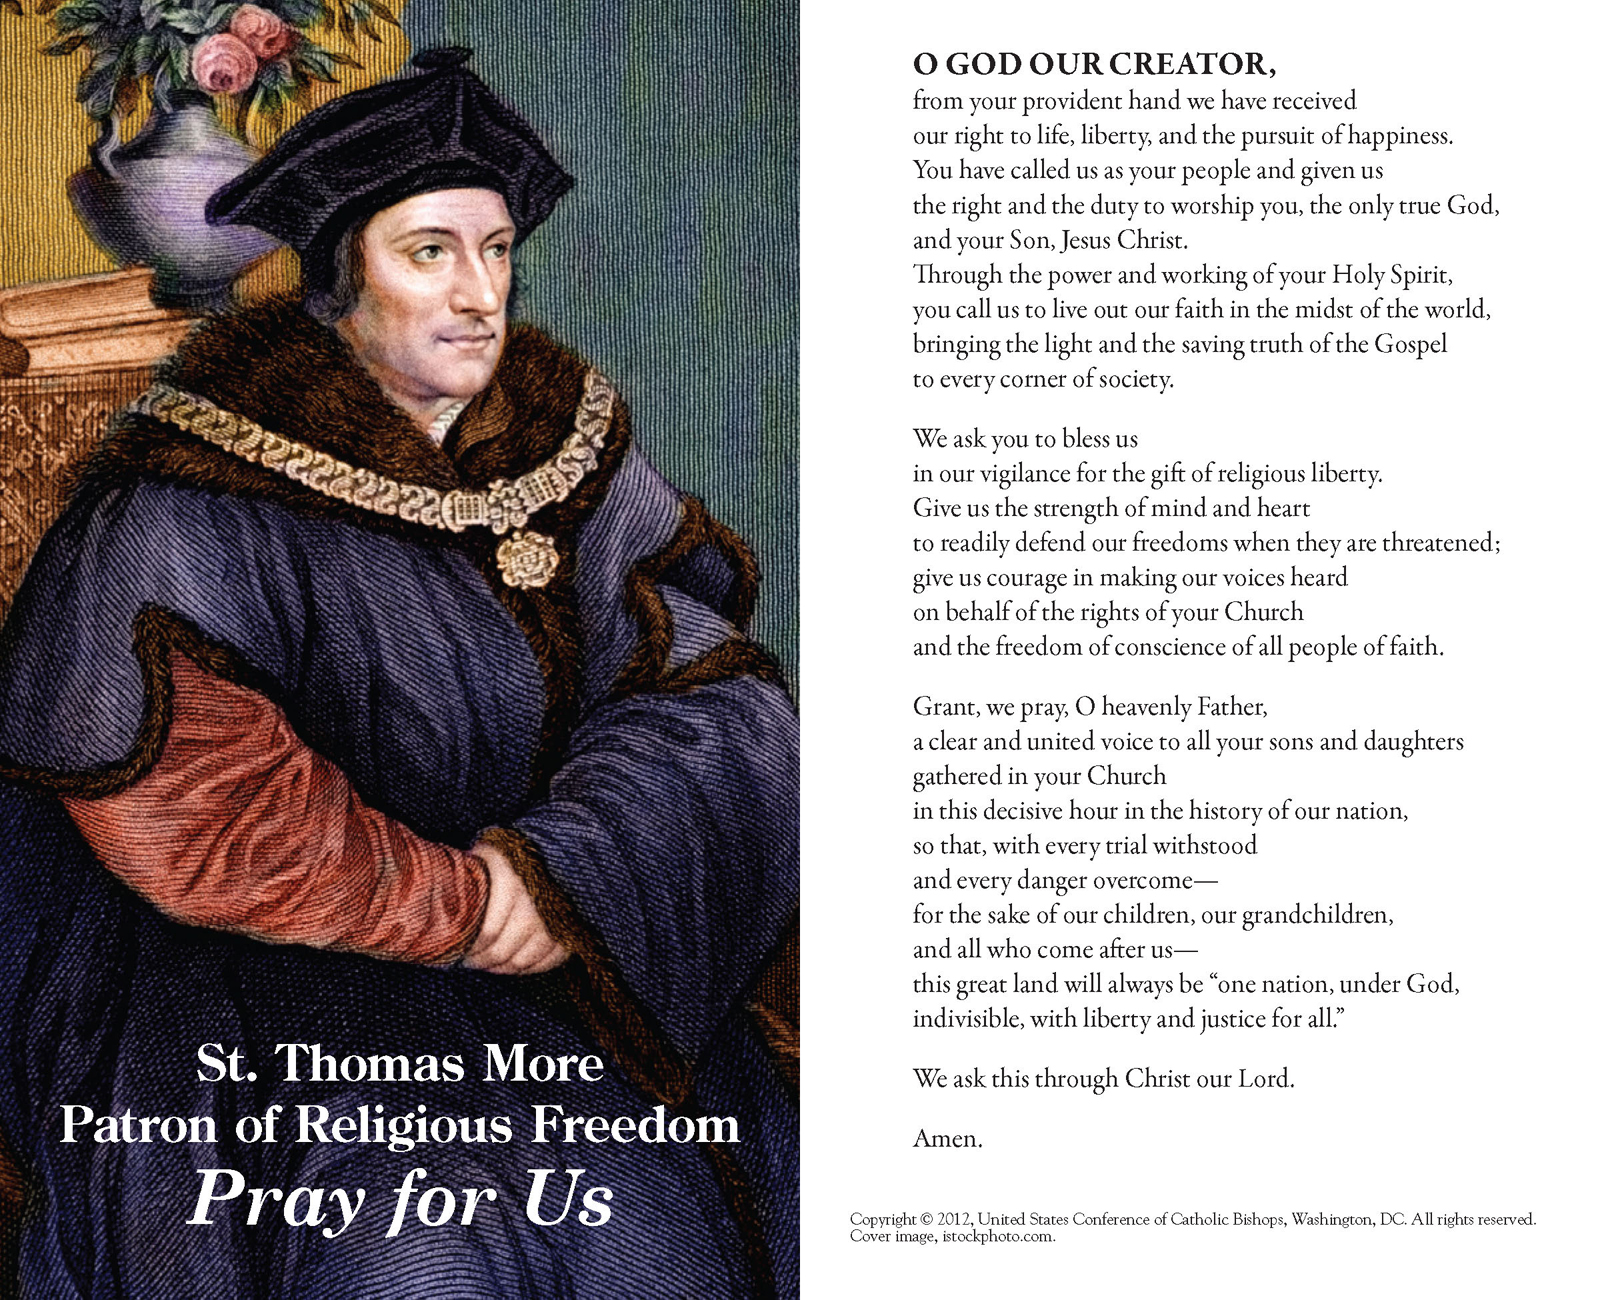 The fortnight for freedom saints john fisher and thomas more